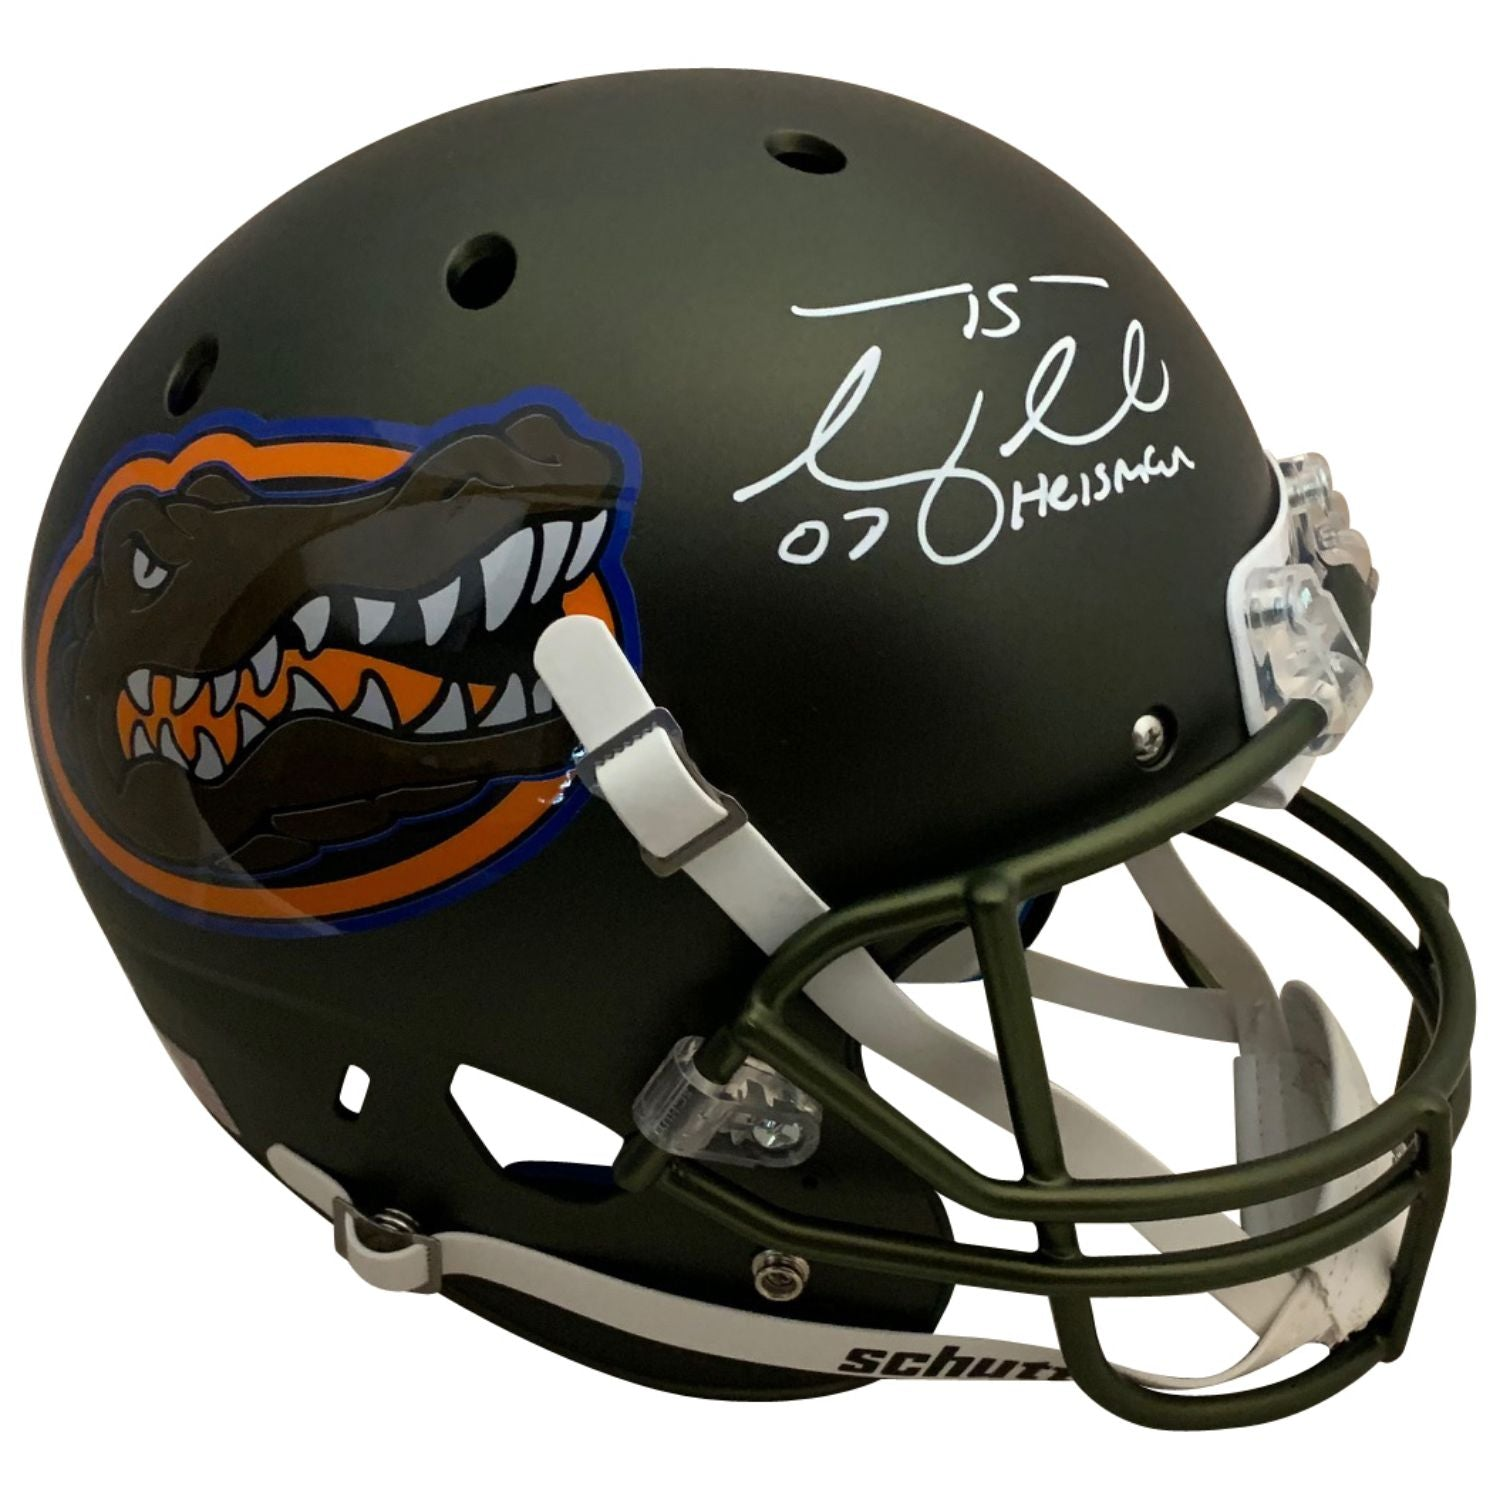 Tim Tebow Autographed Florida Gators Signed Full Size Football Helmet 2007 HEISMAN TROPHY-Powers Sports Memorabilia